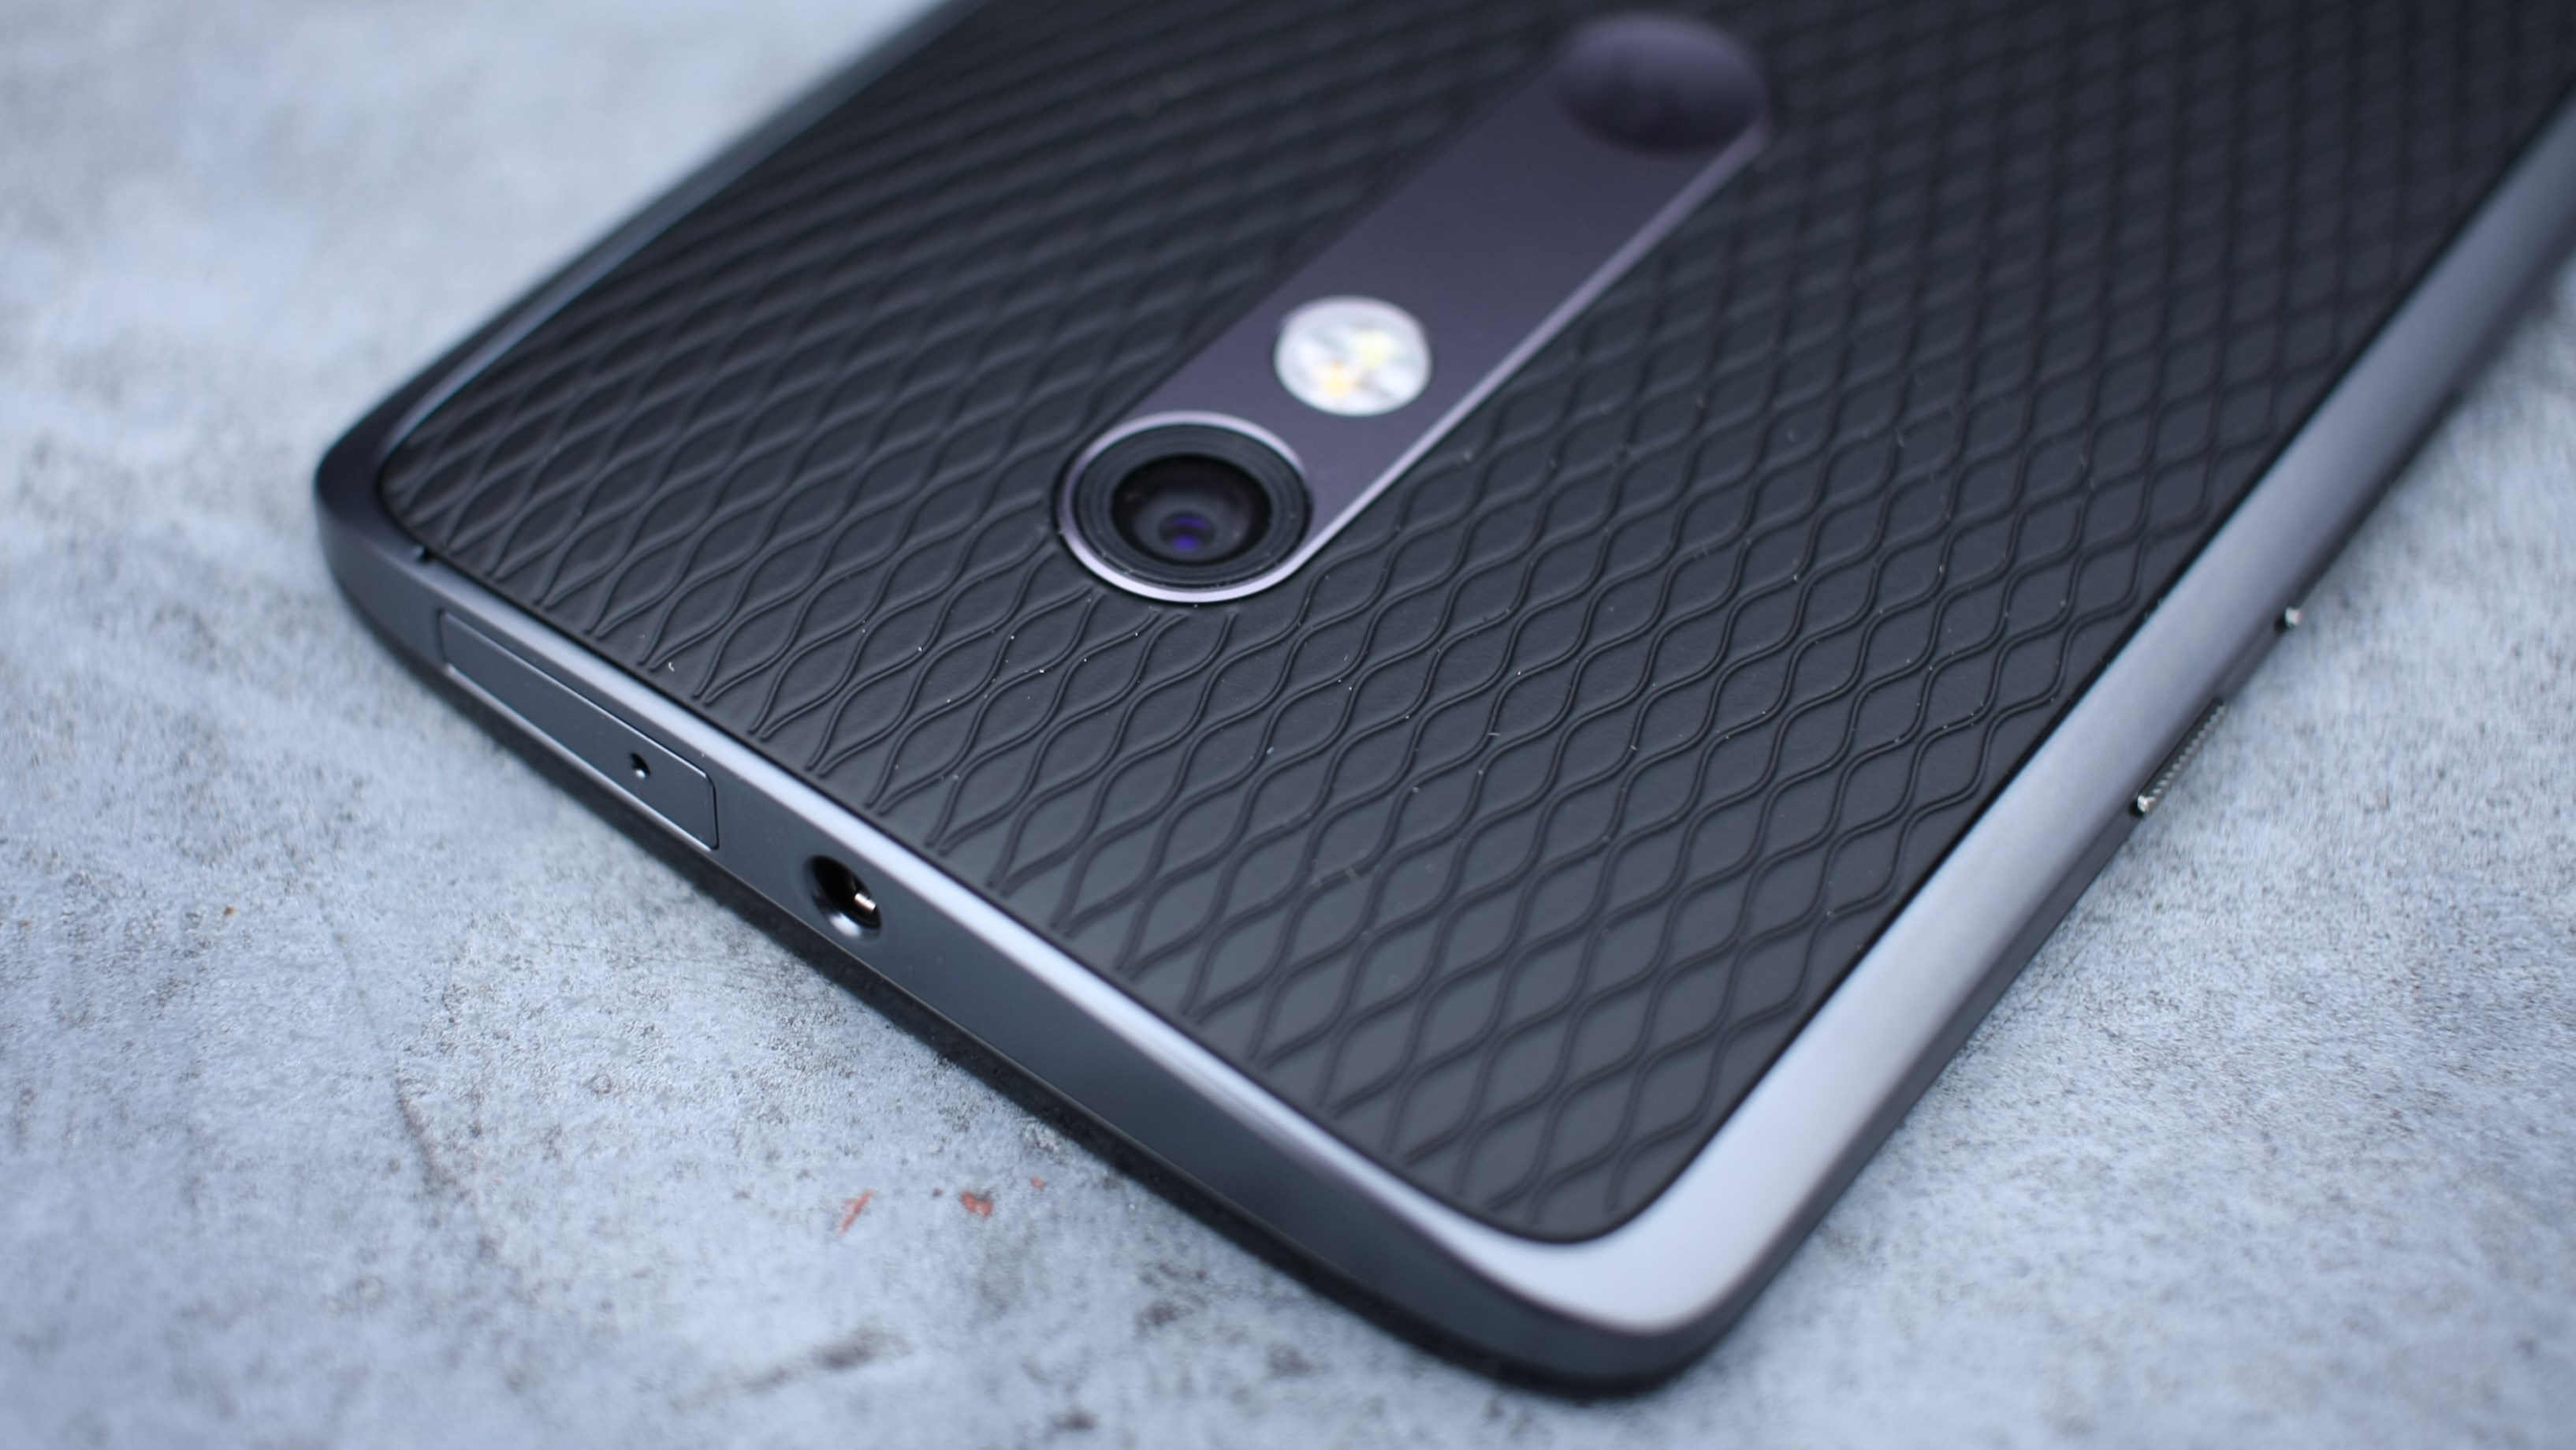 Motorola Moto X Play review: Still a solid choice | Expert Reviews